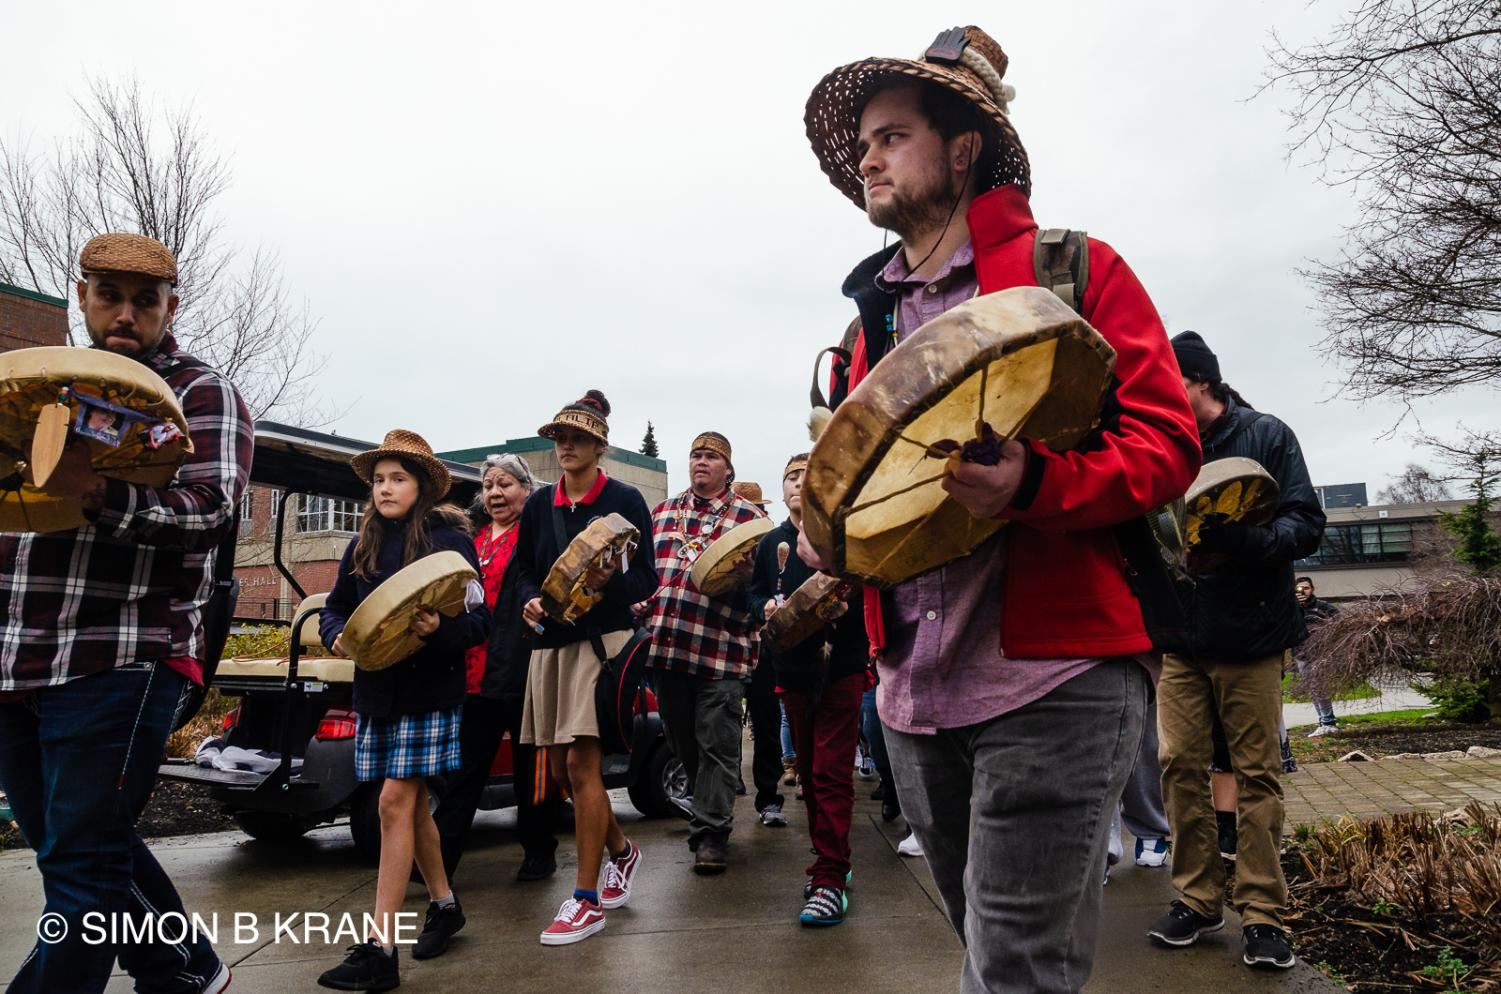 Josh Fryberg (left) and Bradley Althoff (right) play drums during the Indigenous Peoples March on Jan. 17